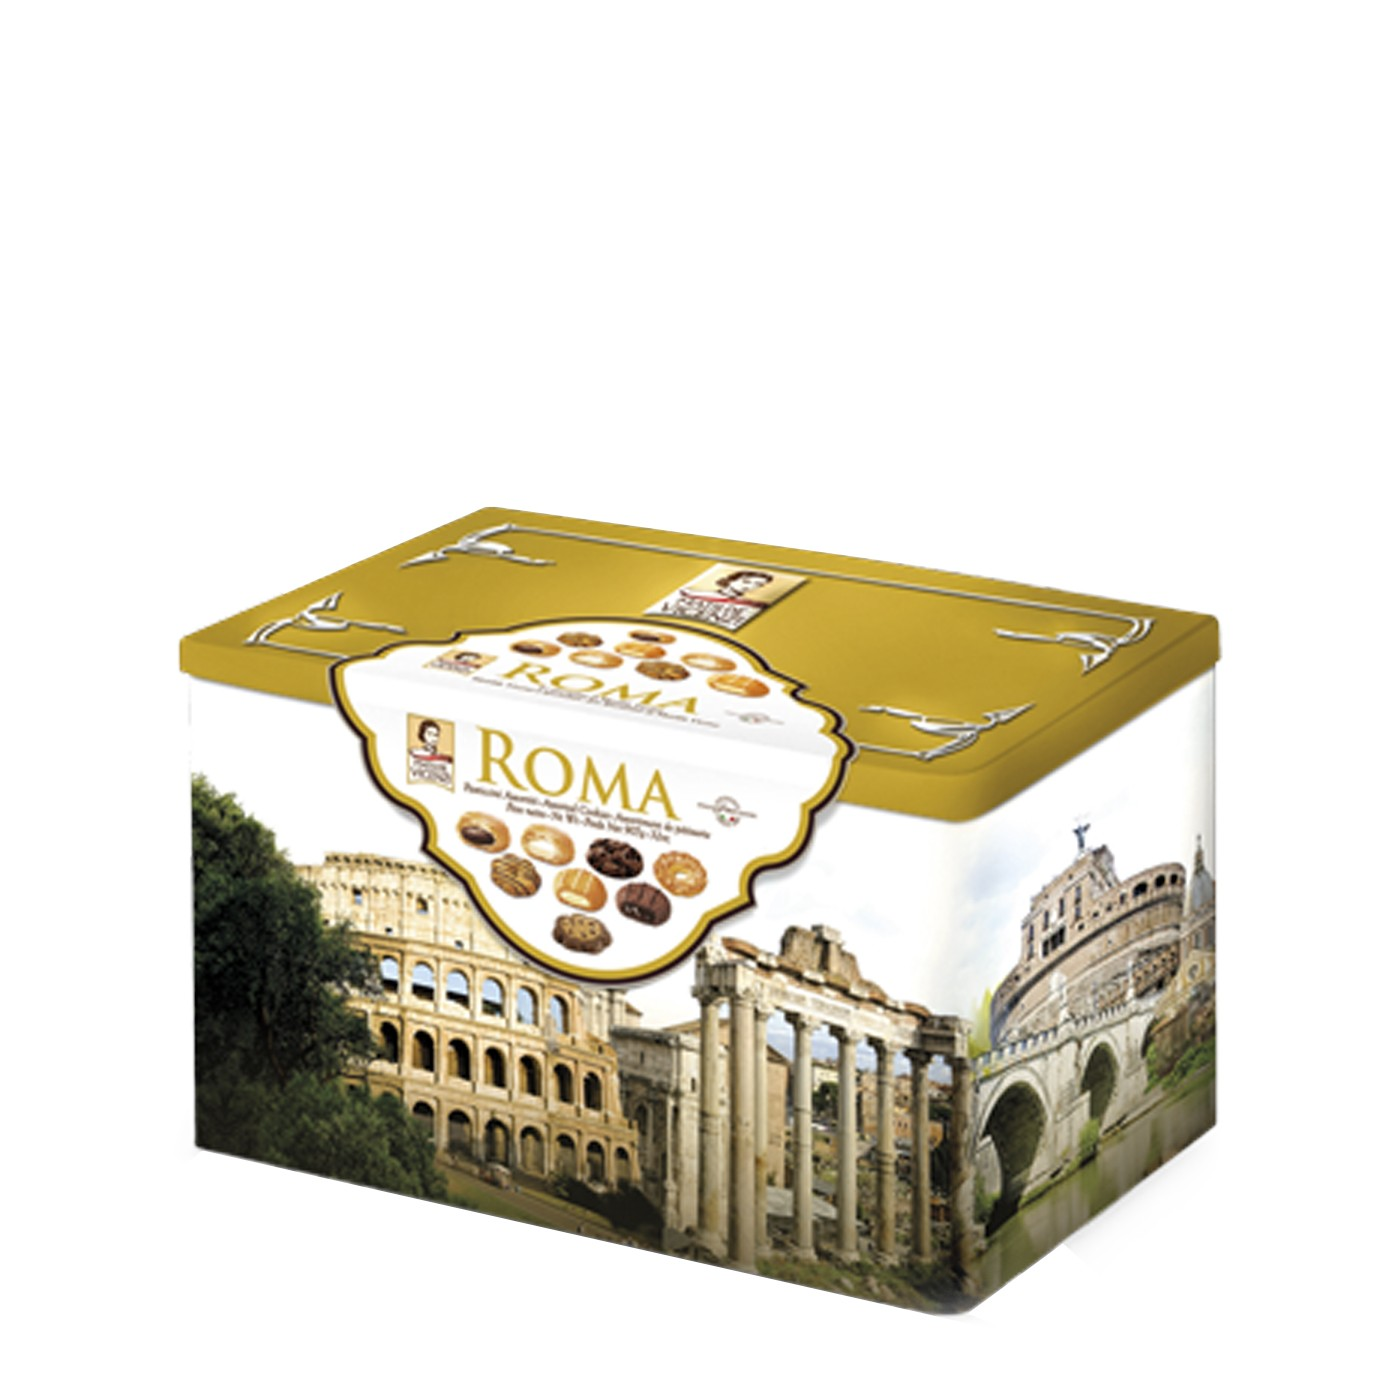 Roma Assorted Puff Pastry & Shortbreads Tin 32oz